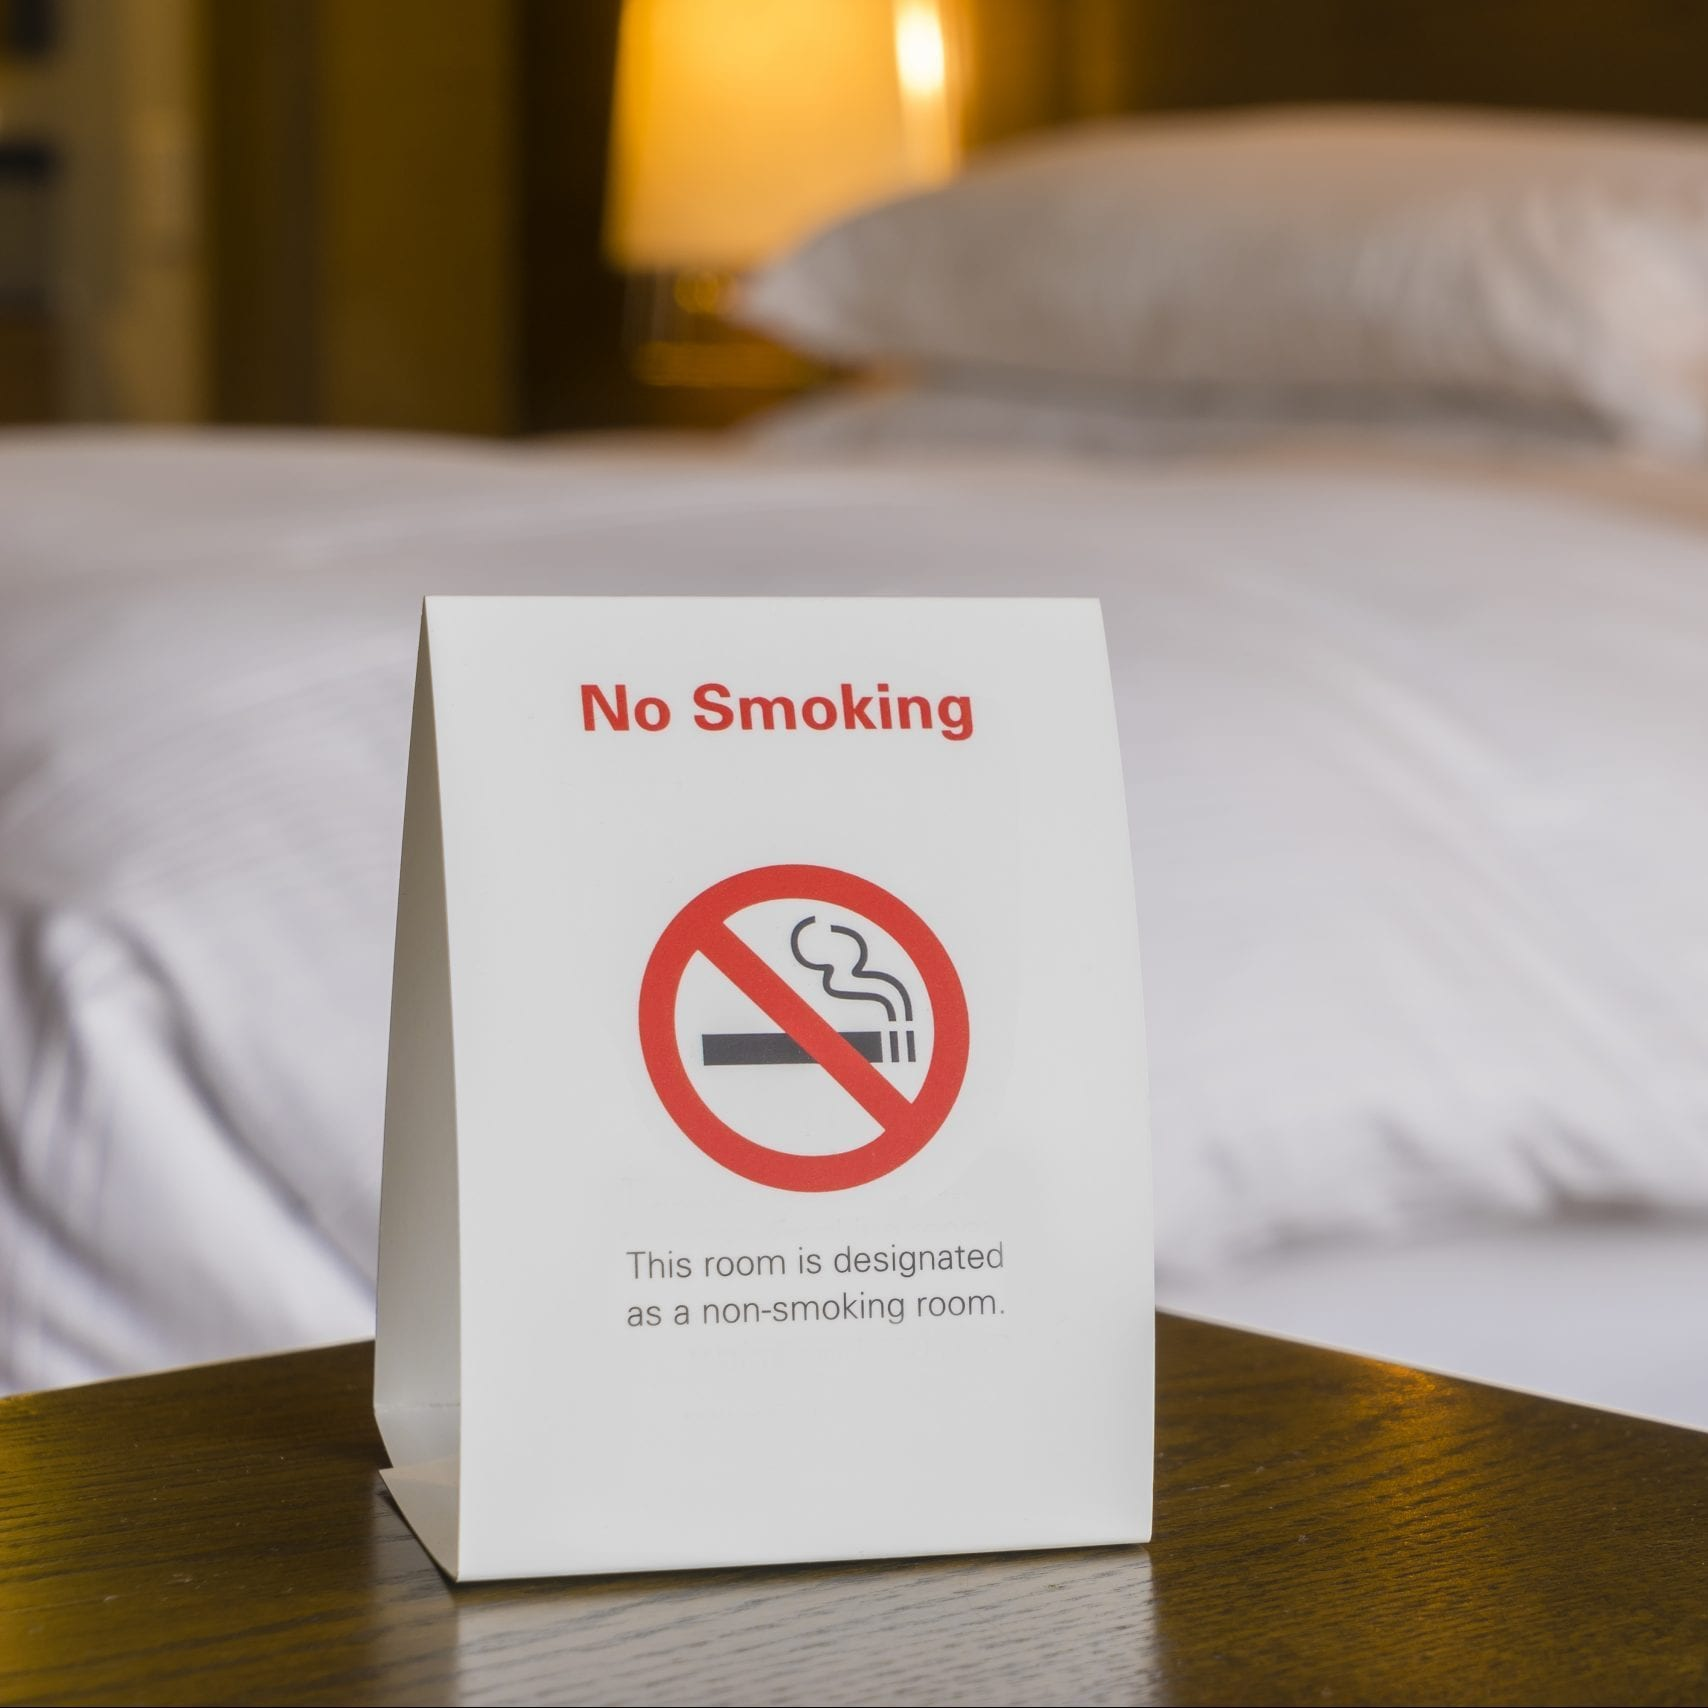 Non smoking hotel room with sign and bed as background